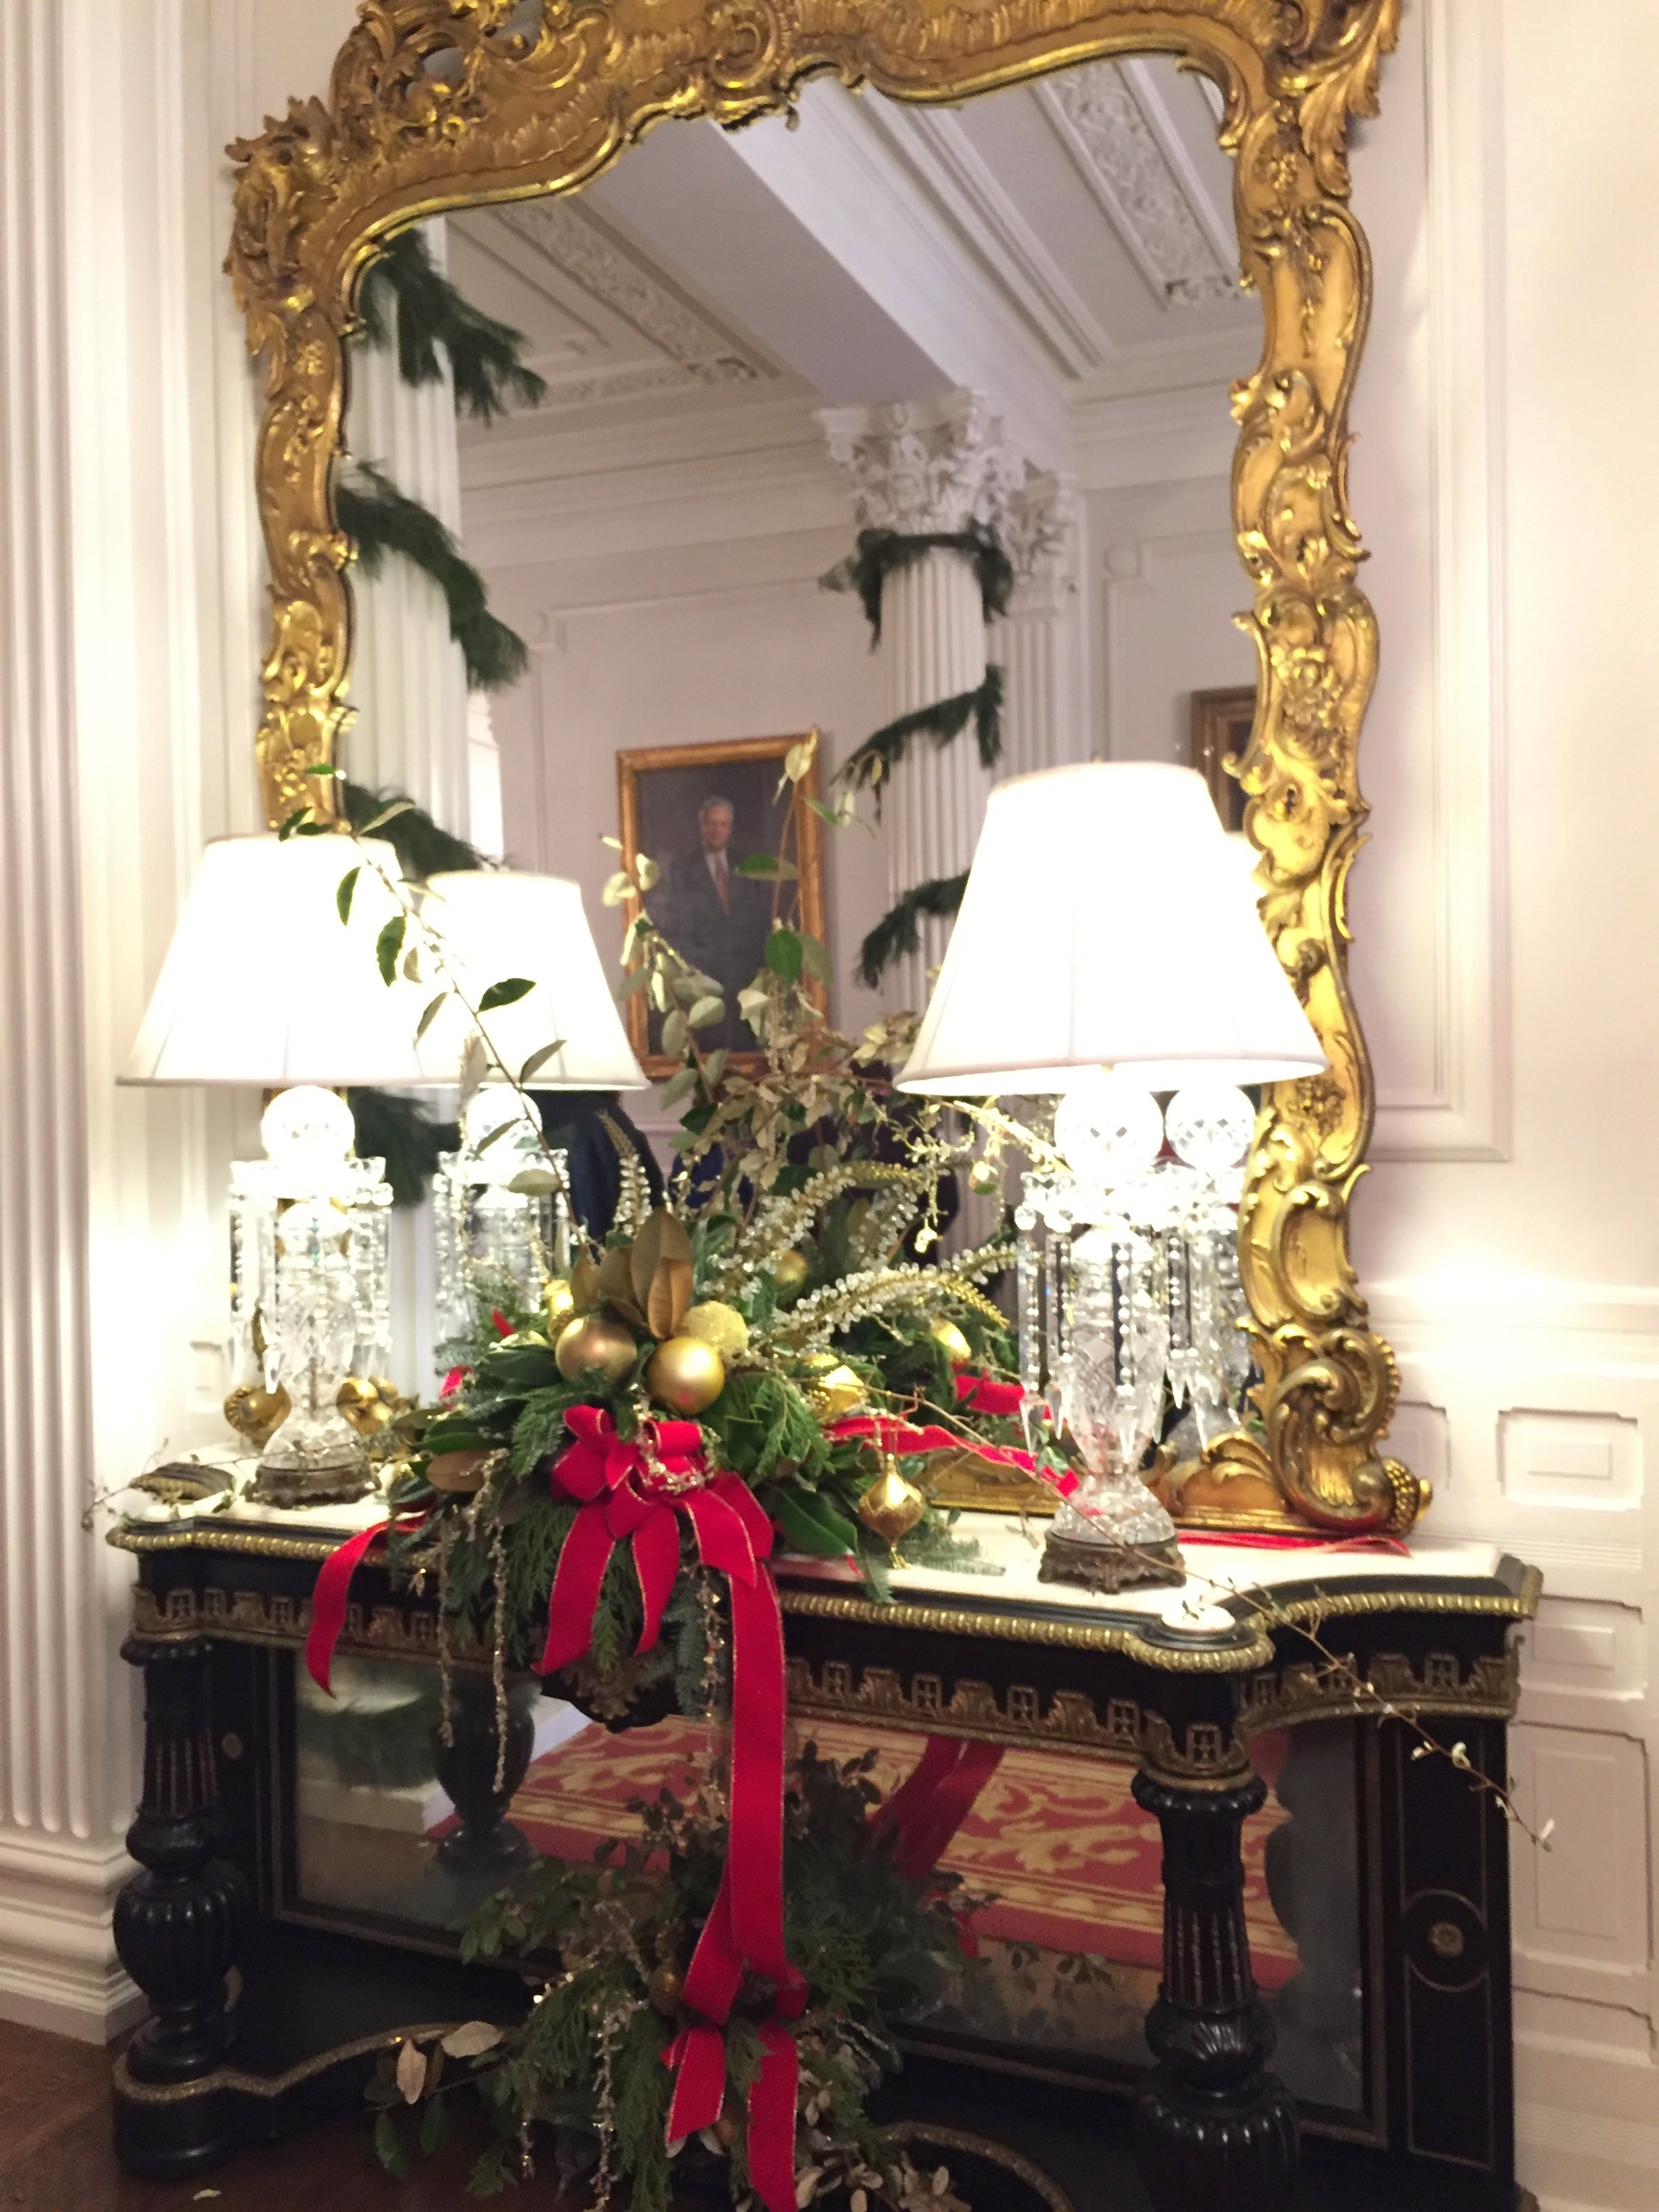 Christmas decor, Governor's Mansion, Raleigh, NC